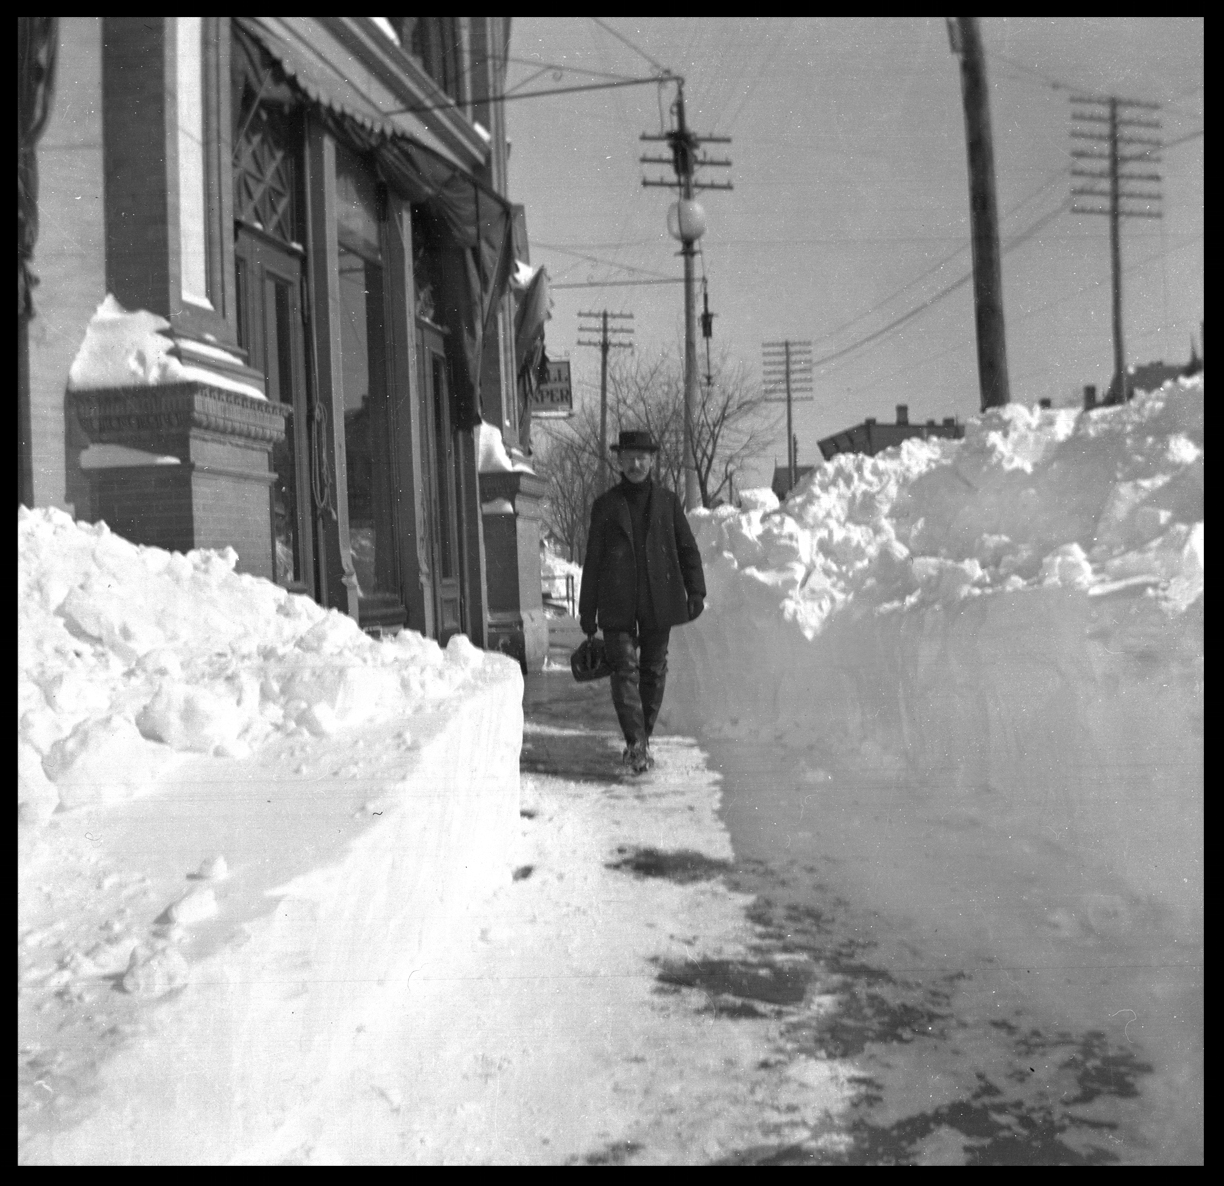 Blizzard of 1899 ( Feb ) from original 4x5 glass plate negative